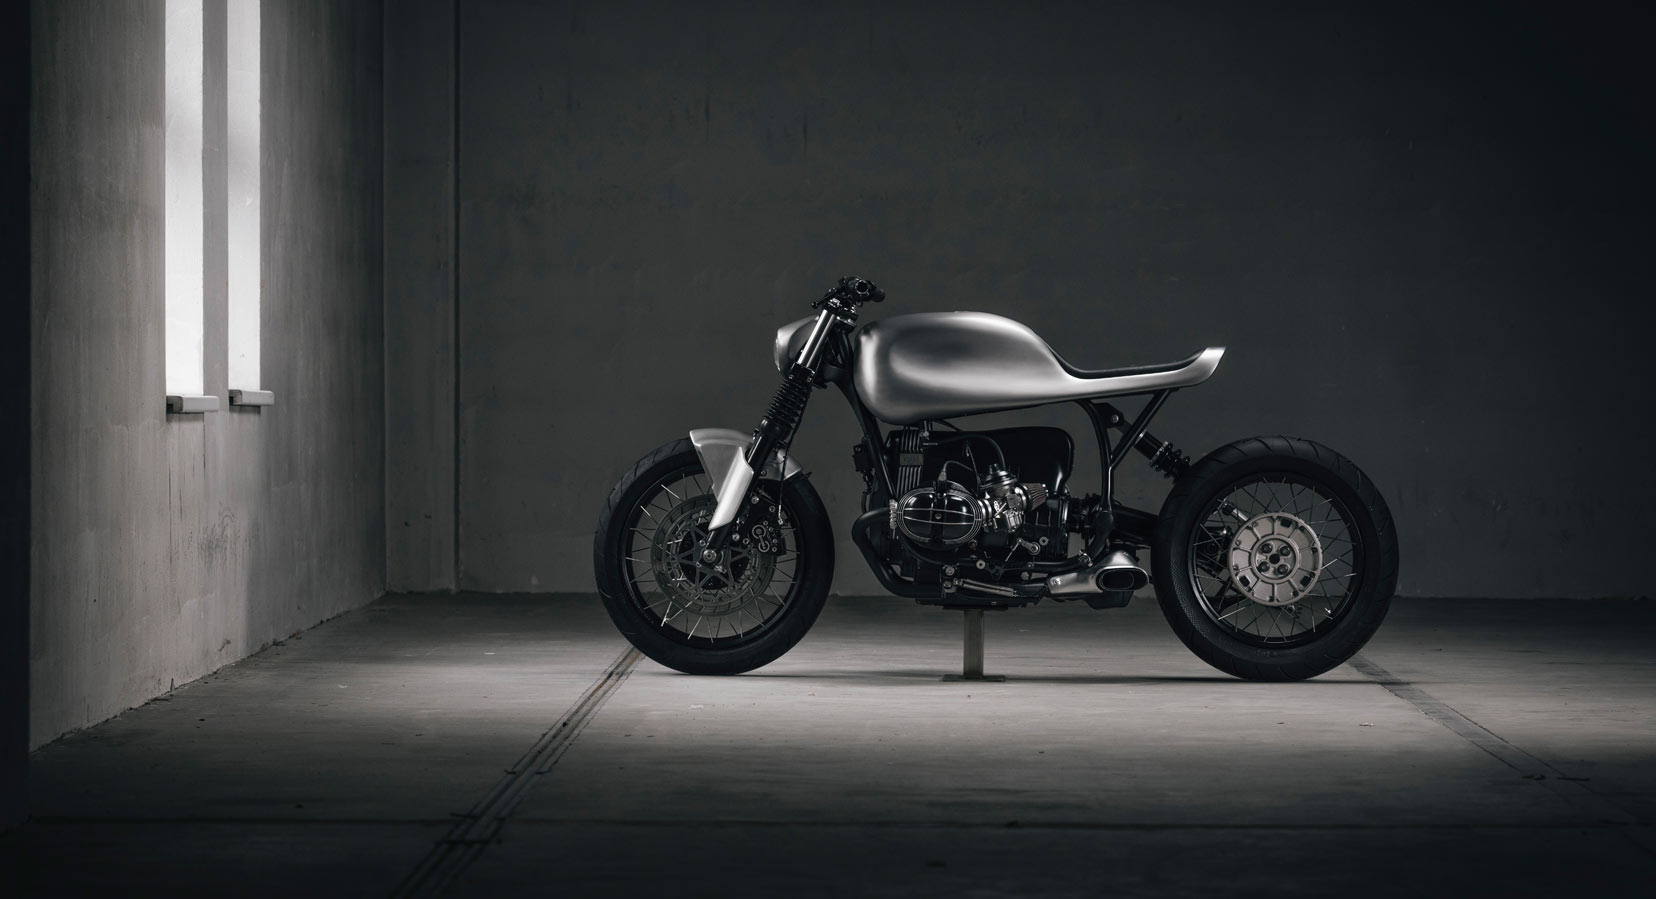 Vagabund Moto Gives The BMW R100R An Ultra-Sleek Update